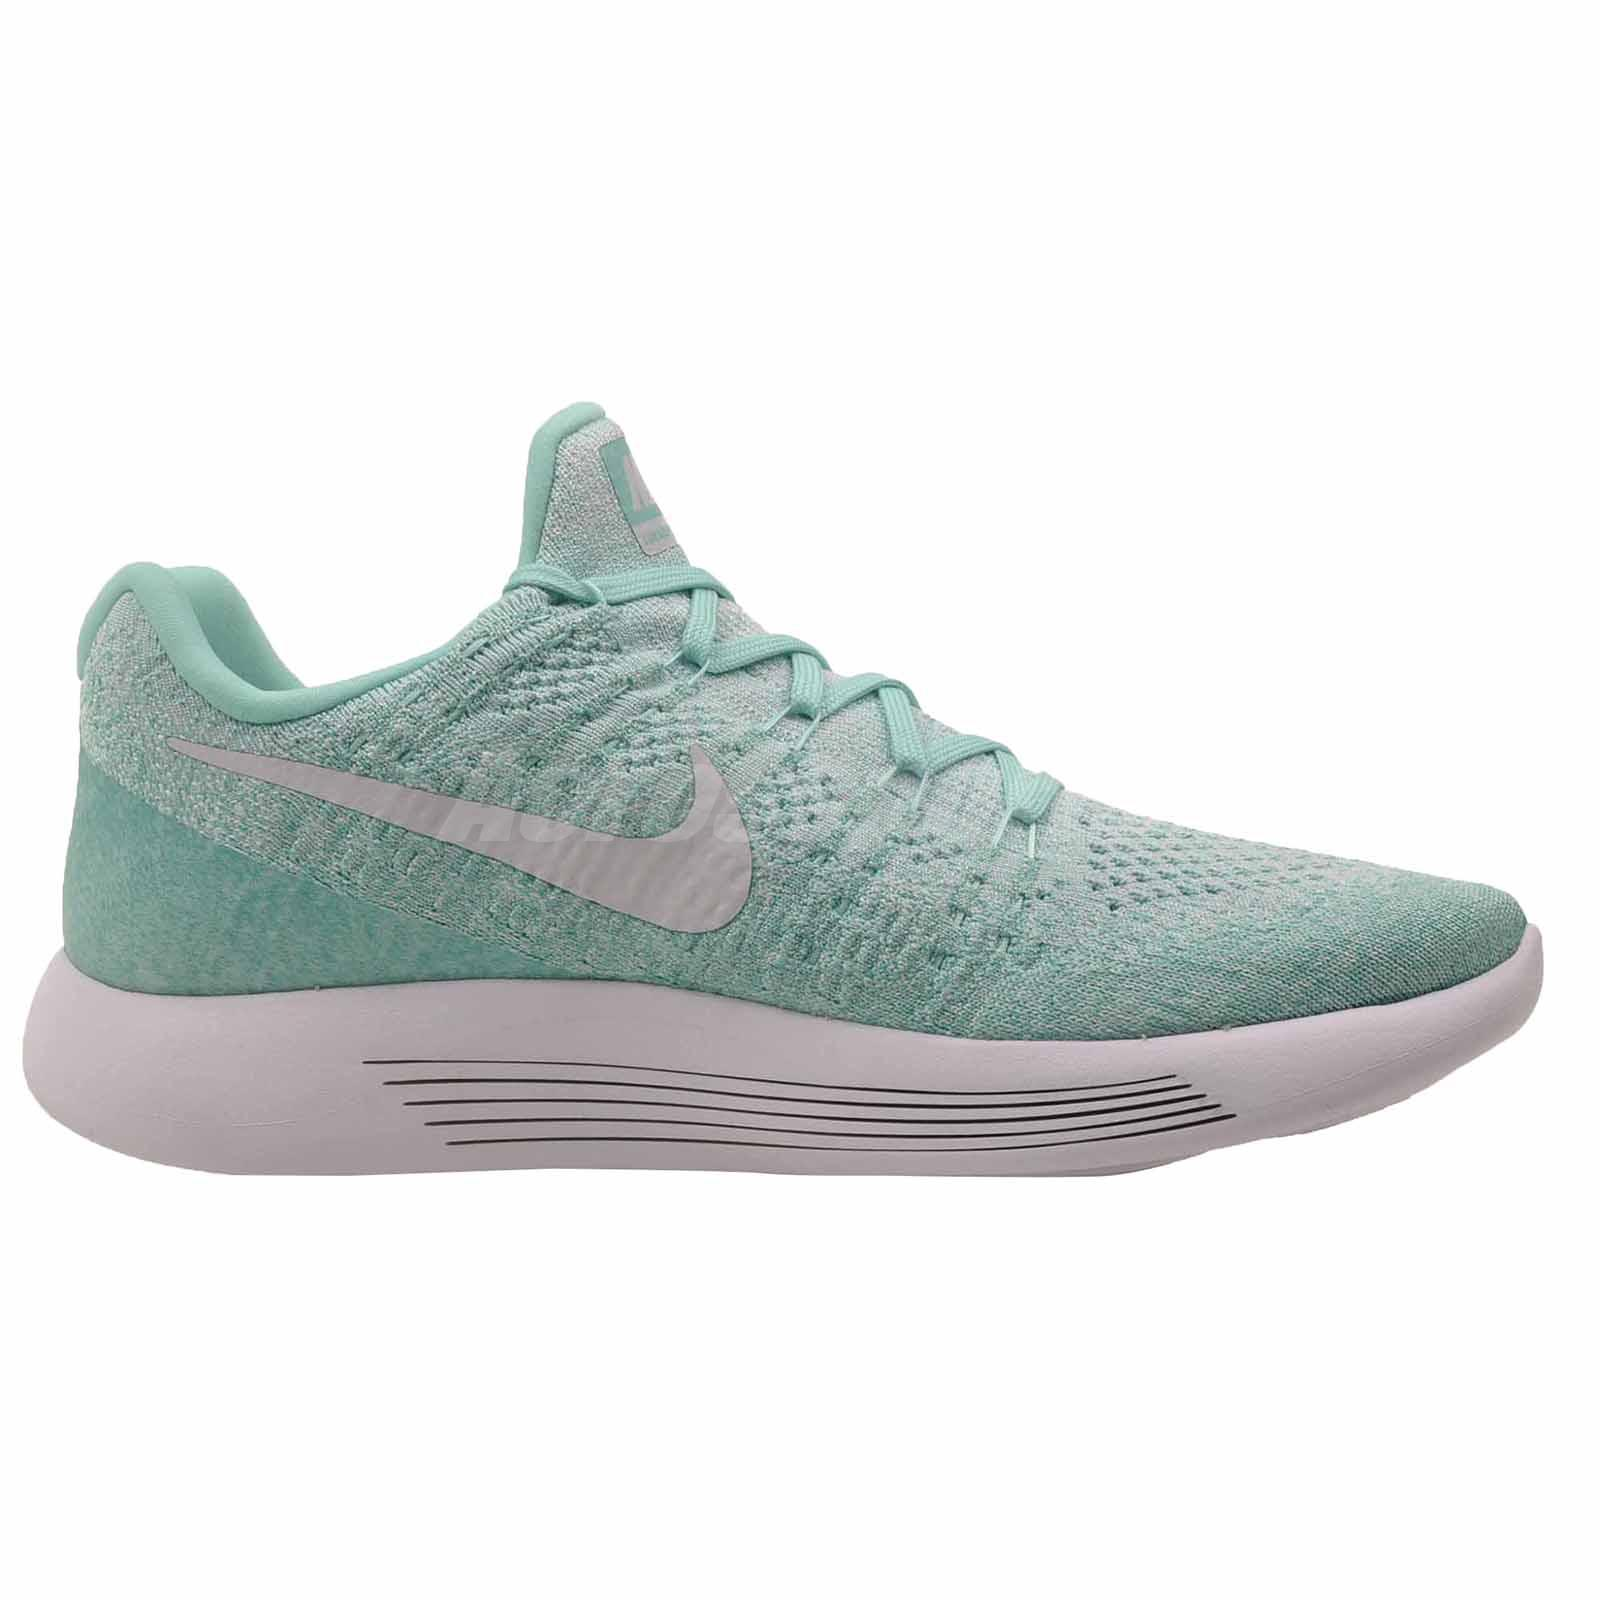 Nike Wmns Lunarepic Niedrig Flyknit 2 Turquoise Running Damenschuhe Schuhes Turquoise 2 ... 394337